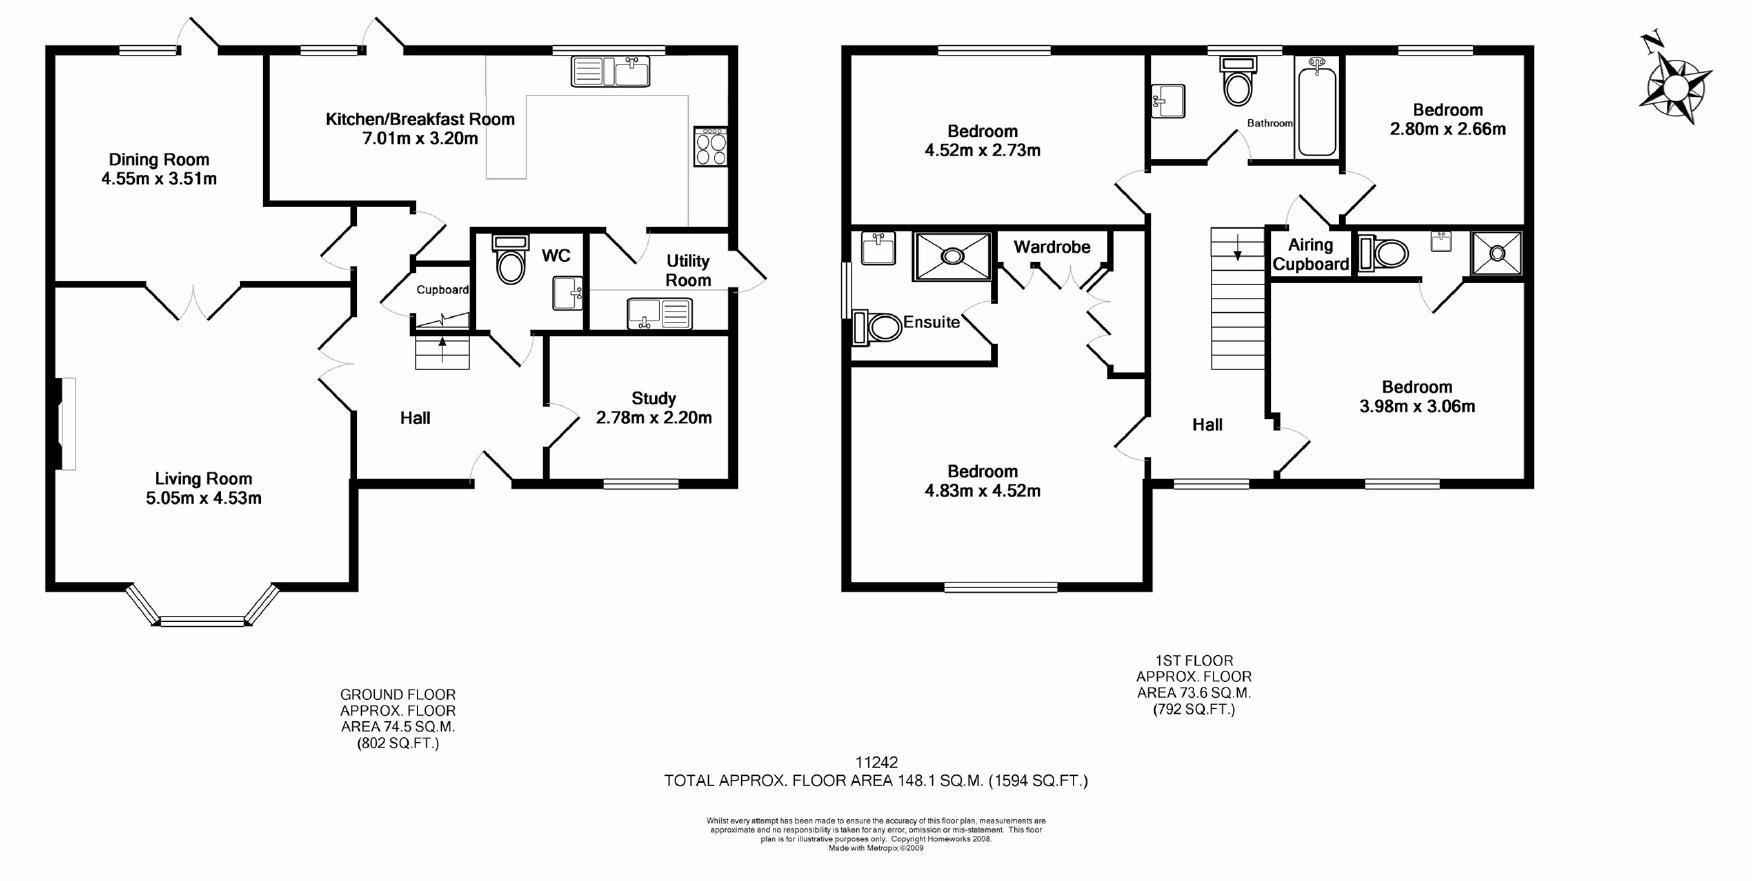 1200 Square Foot Ranch House Plans moreover Single Story Tiny House Plans furthermore Small House Plans For Senior Citizens as well Design Detail also Flemish Manor House Plan. on 2 story house plans